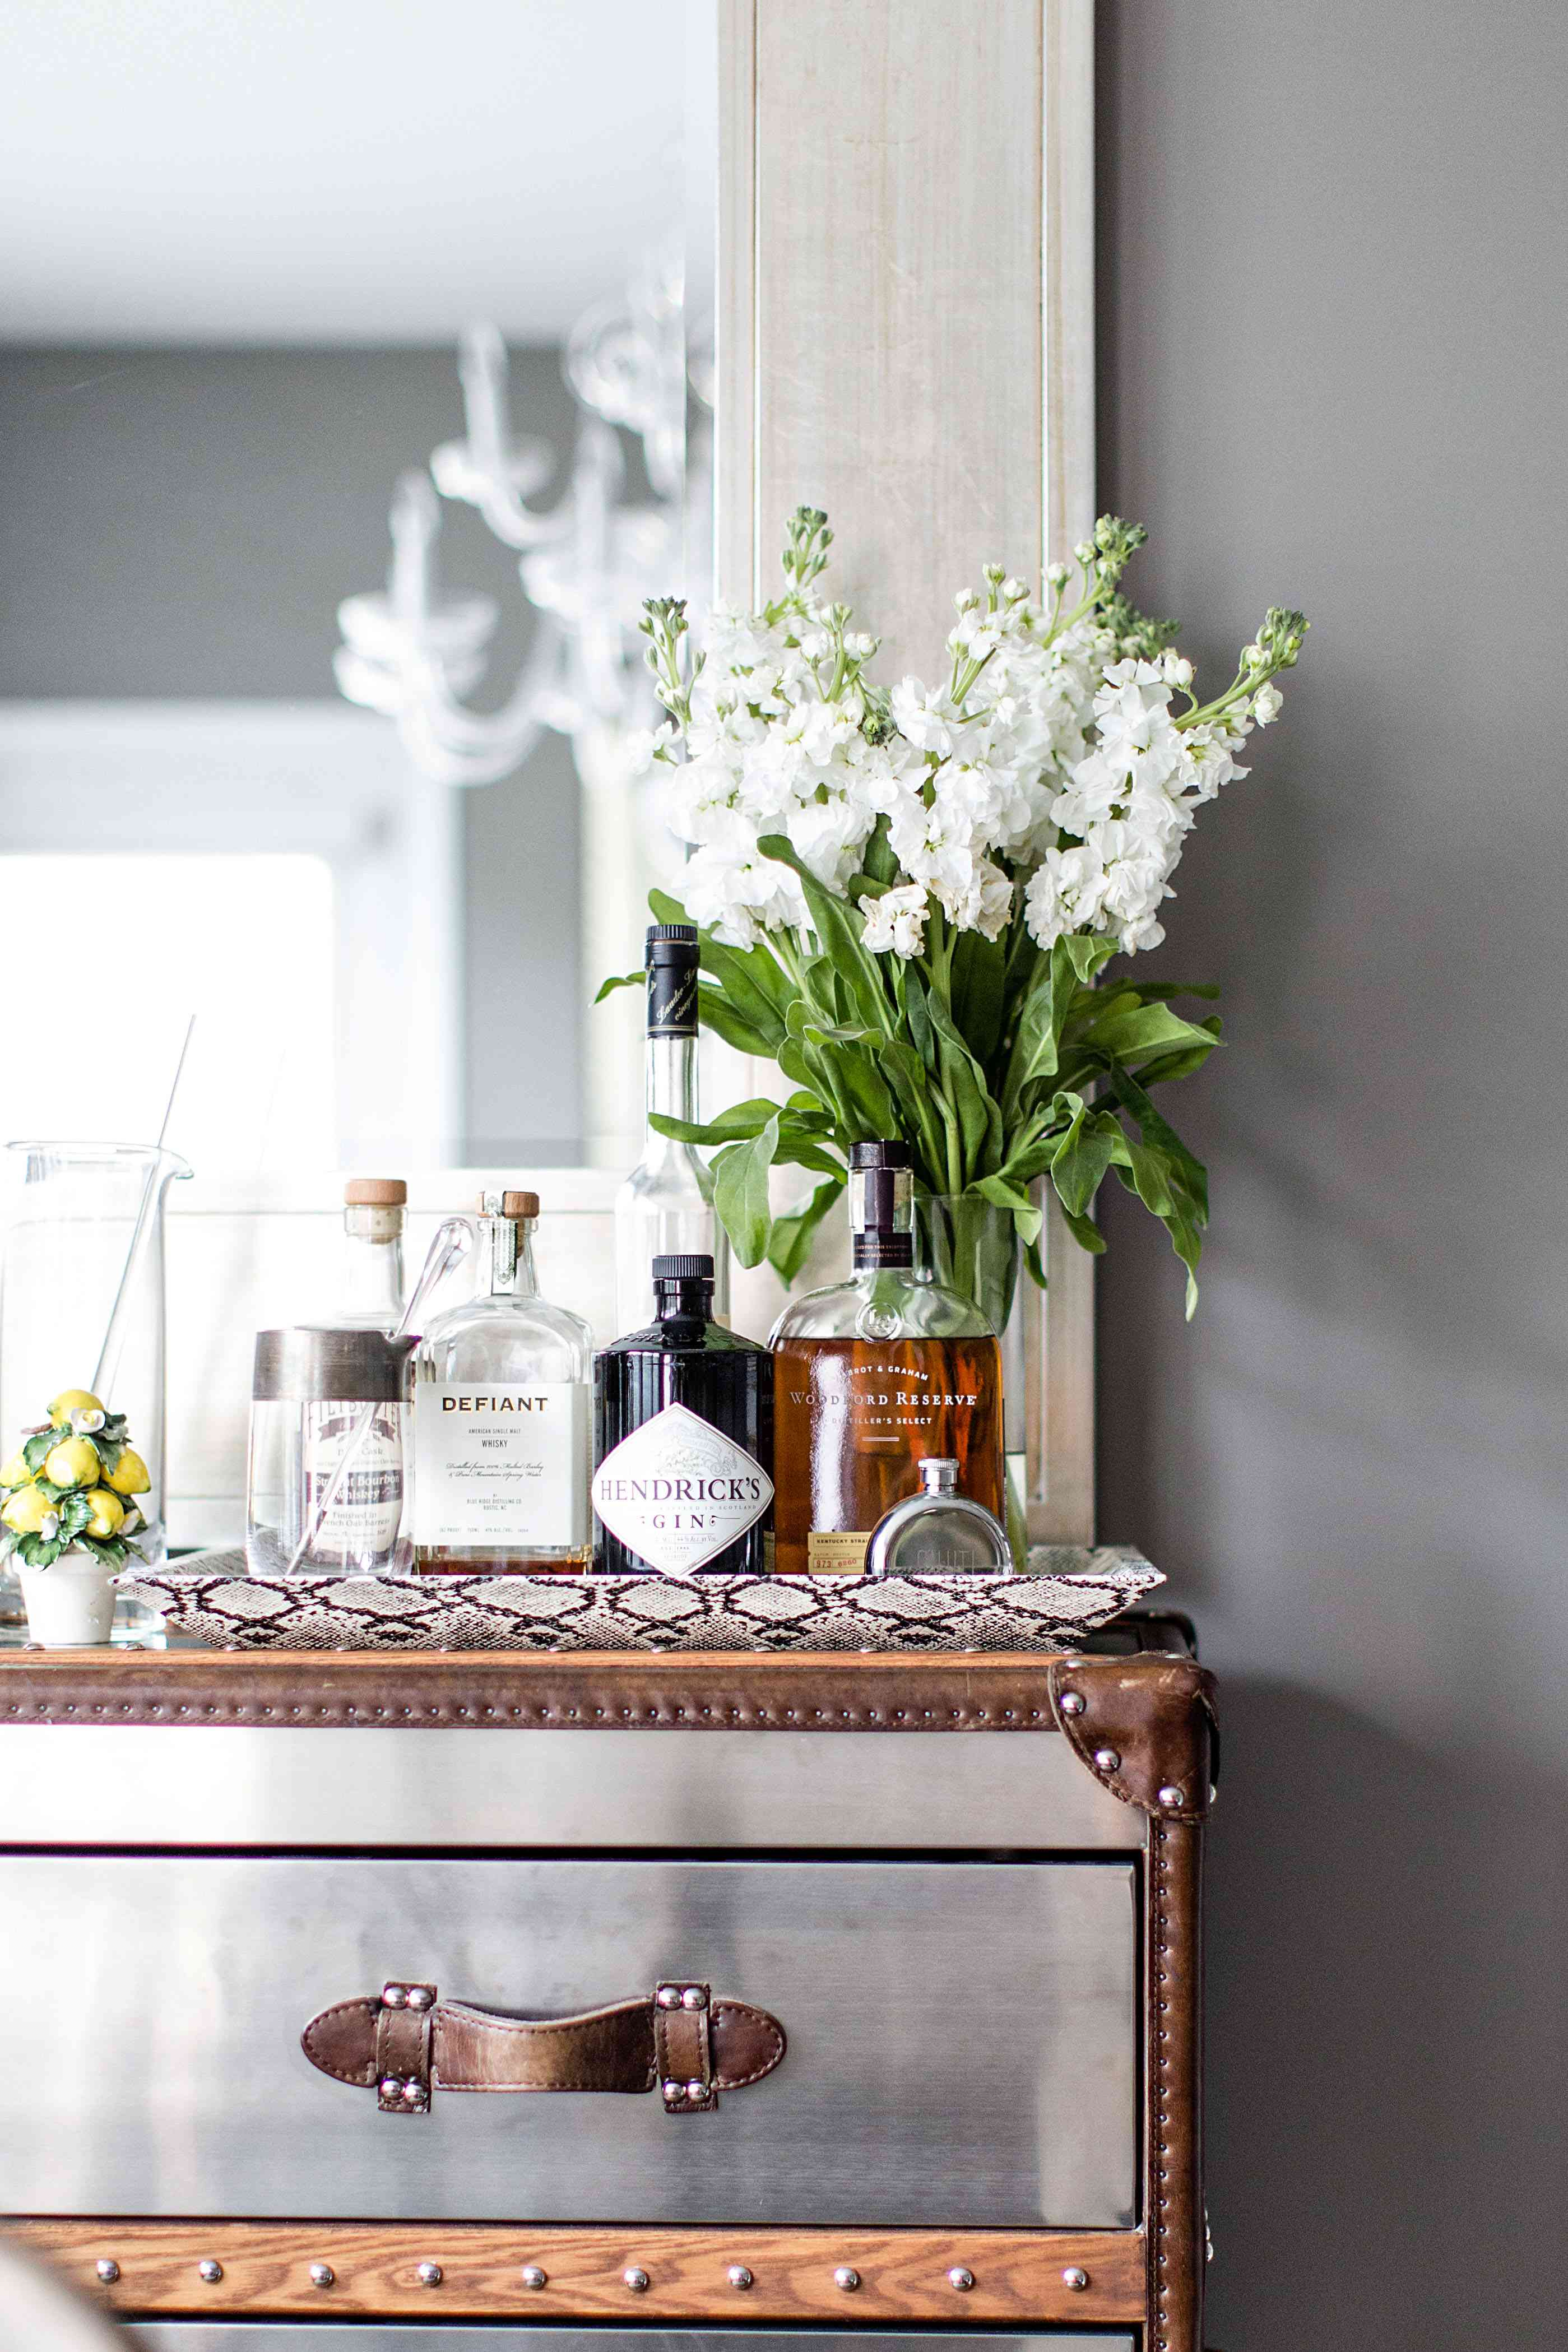 Stainless steel dresser styled with flowers and liquor bottles.